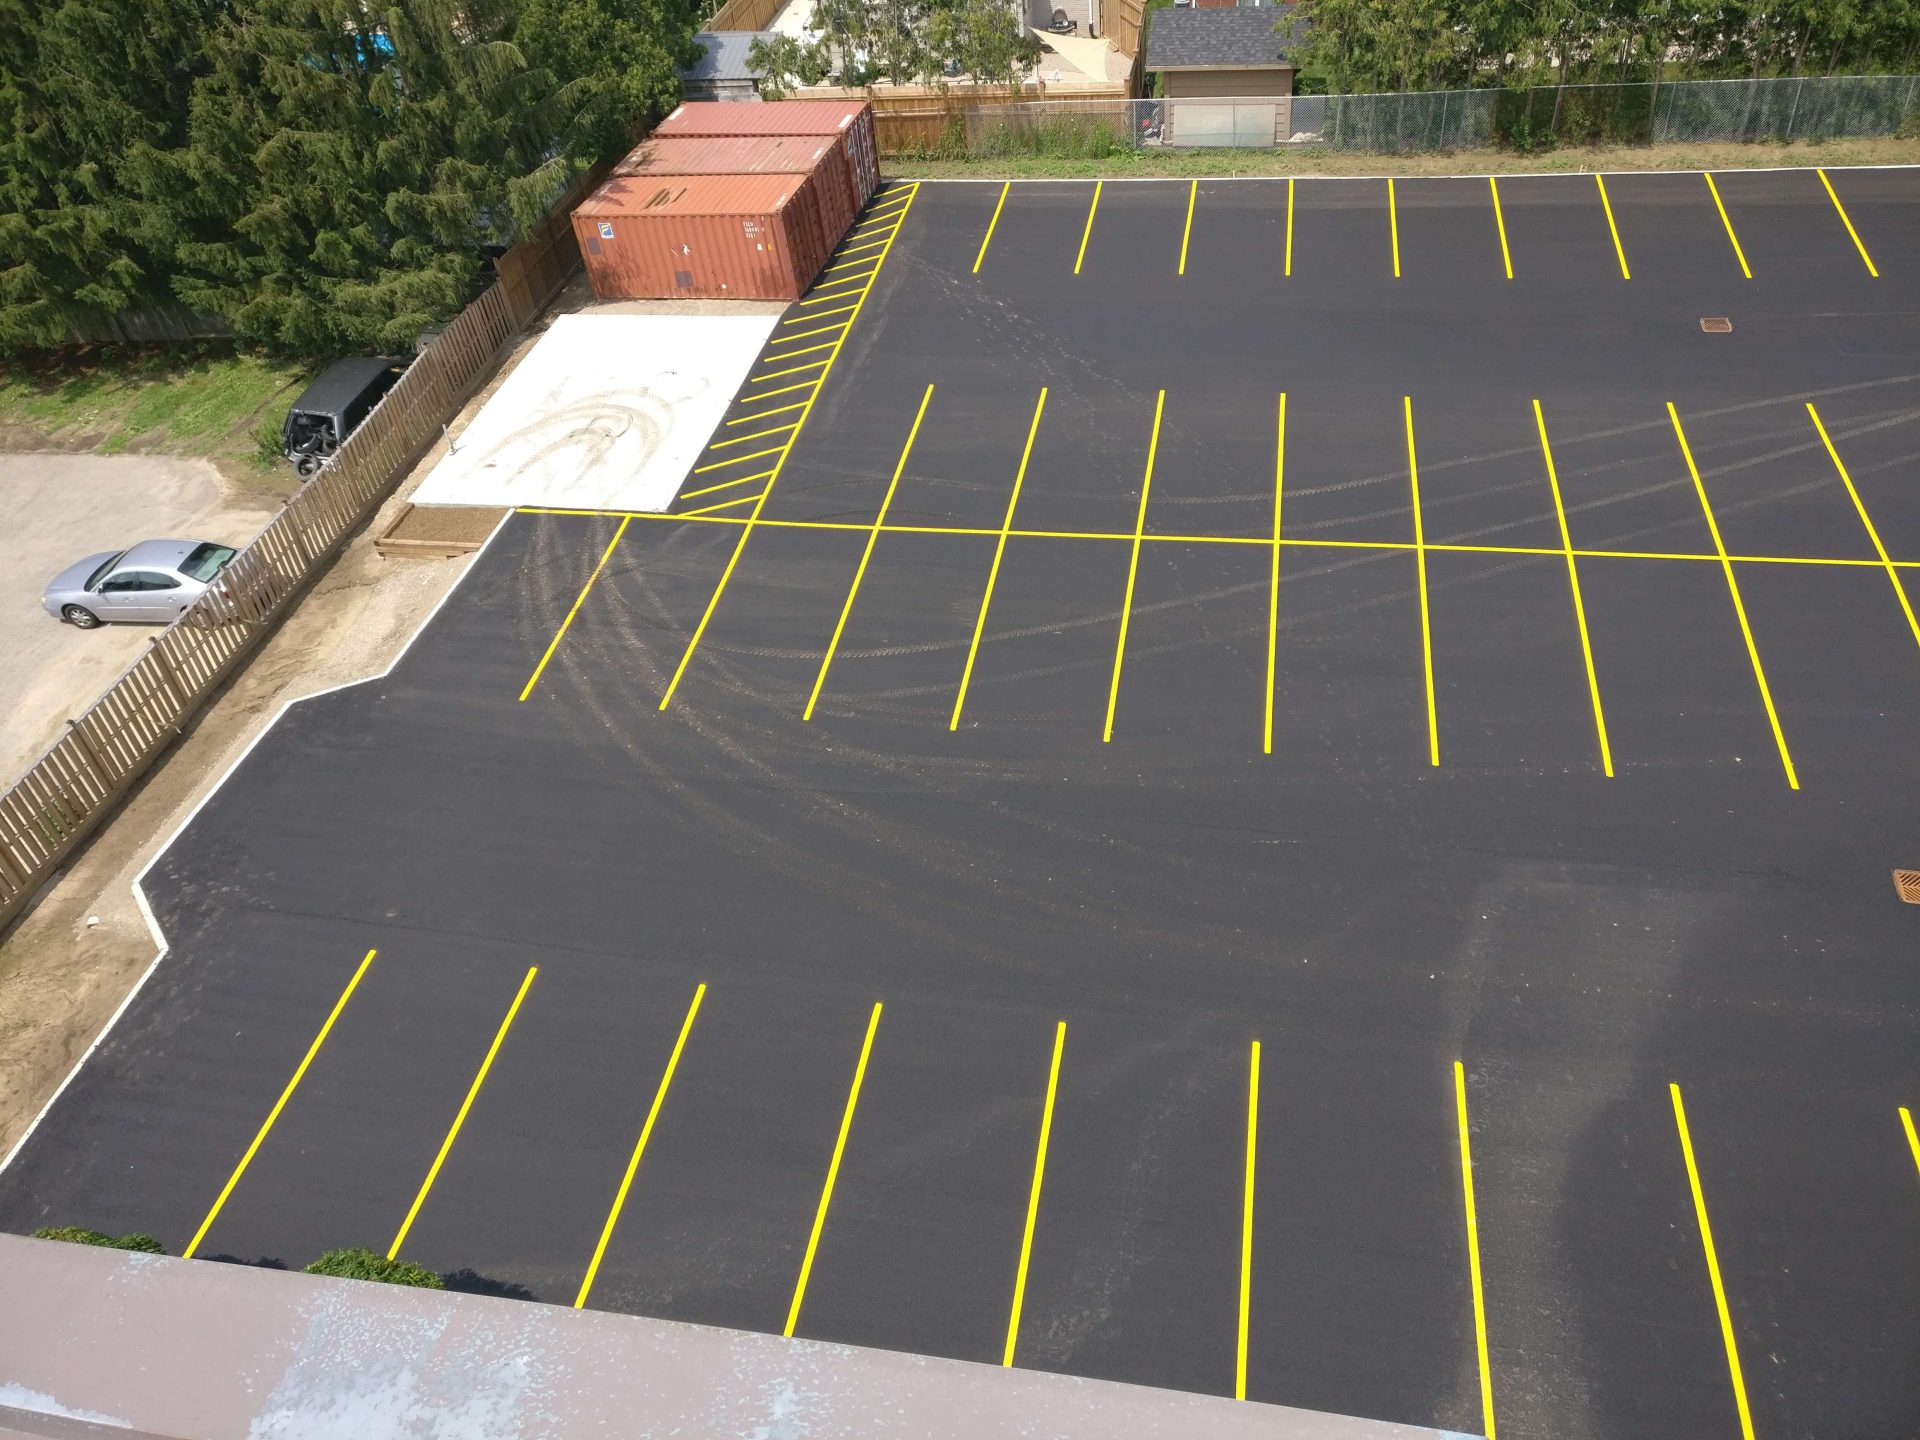 paved parking lot with yellow lines